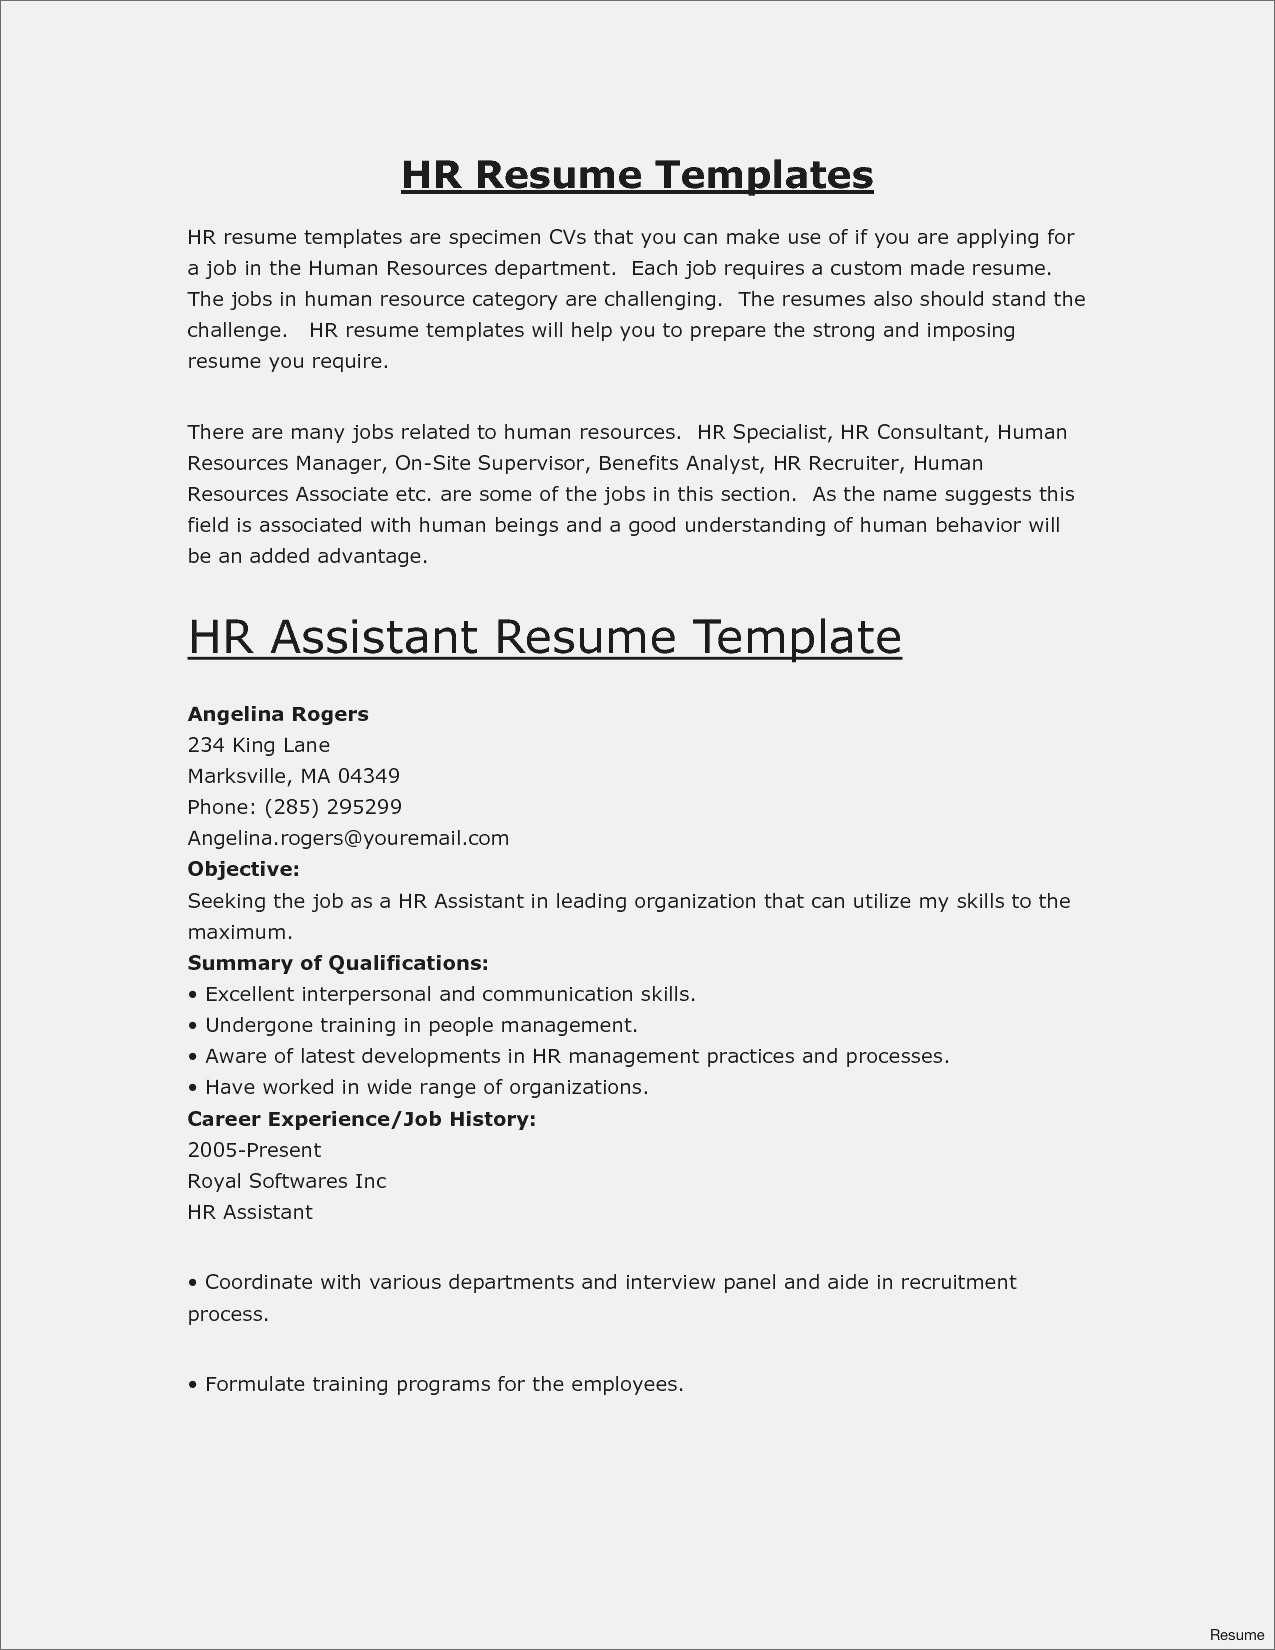 Dance Resume Template Microsoft Word - Engineering Resume Templa New Fresh Pr Resume Template Elegant